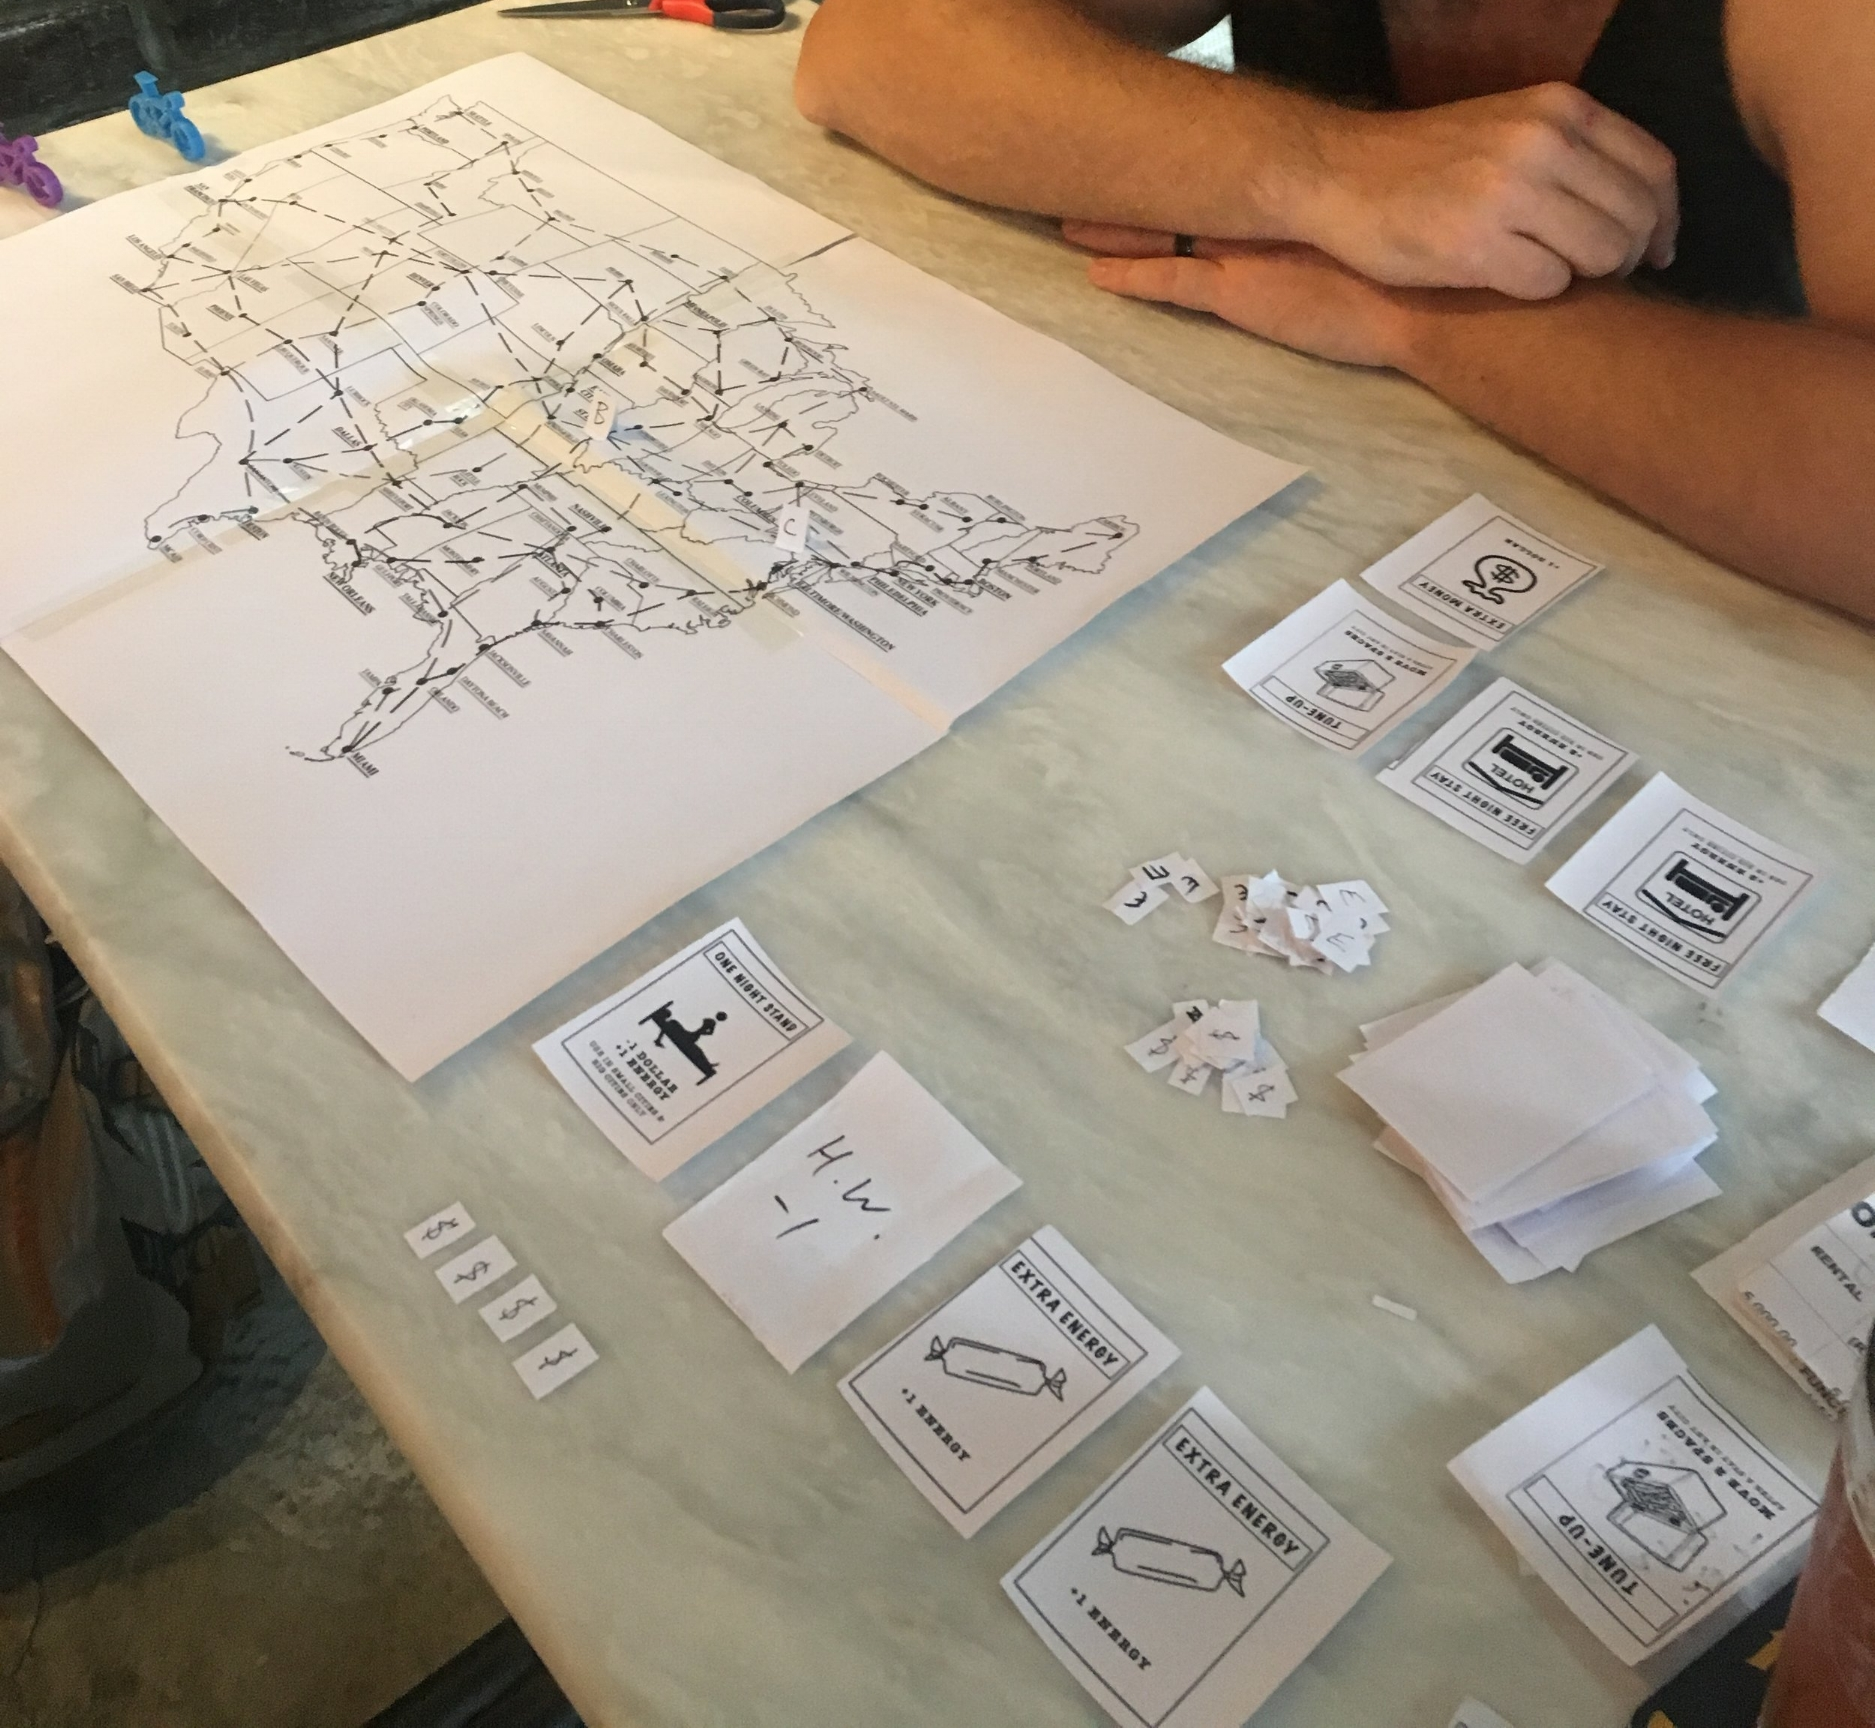 You can see the first attempt to create our segmented routes. Also you can see our first printed playing cards.